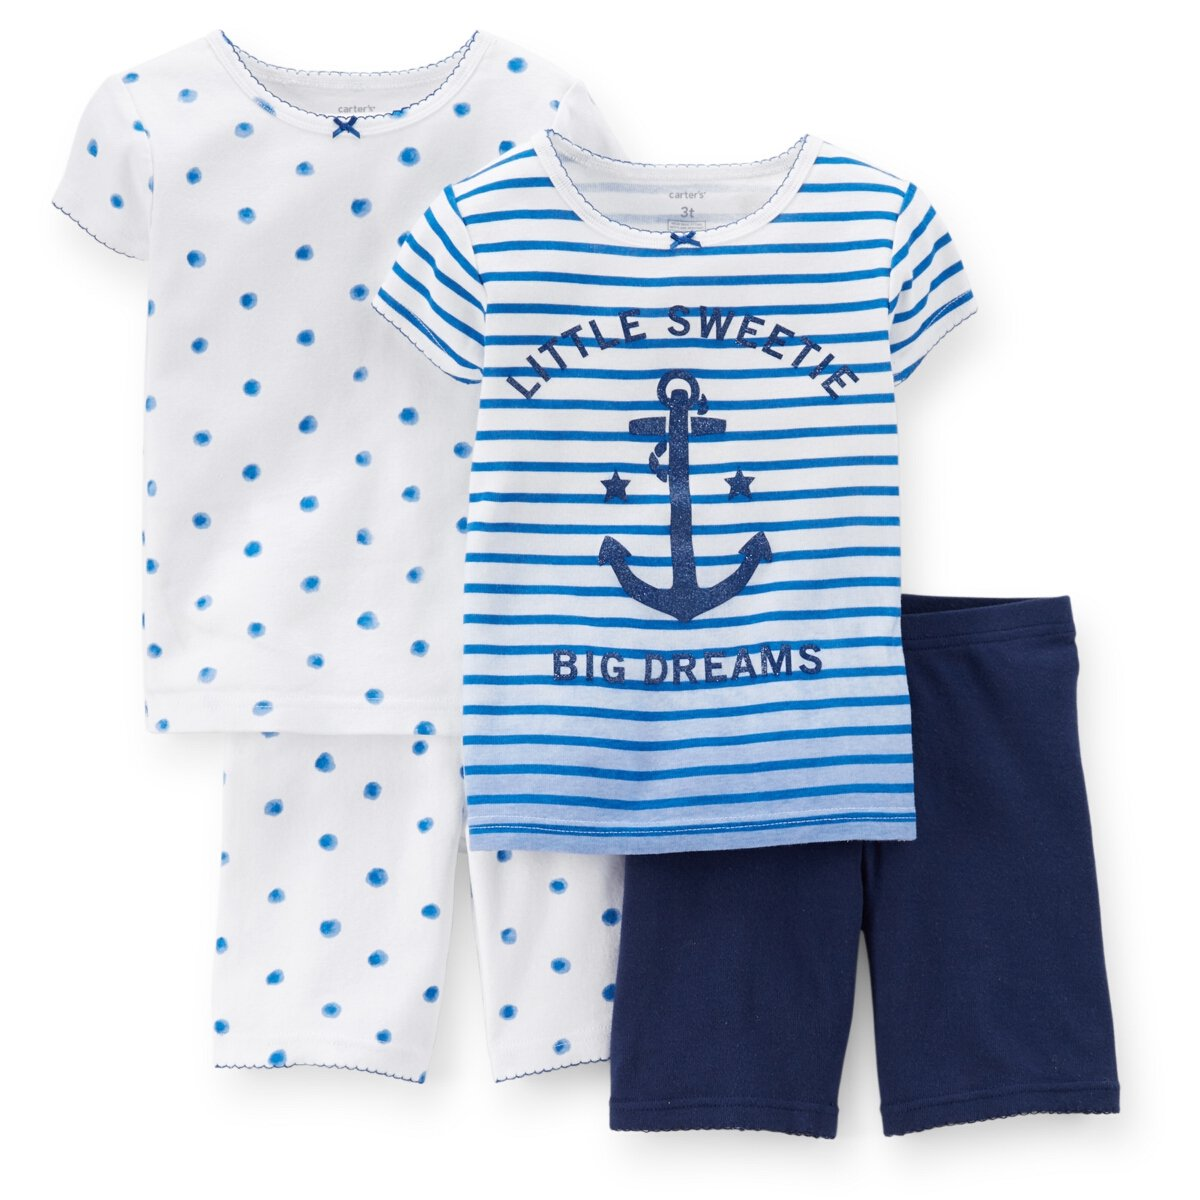 a9a60b0f37e31 Carter's Baby Girls 4 Piece Snug Fit Cotton Pajamas (Blue) (12 ...